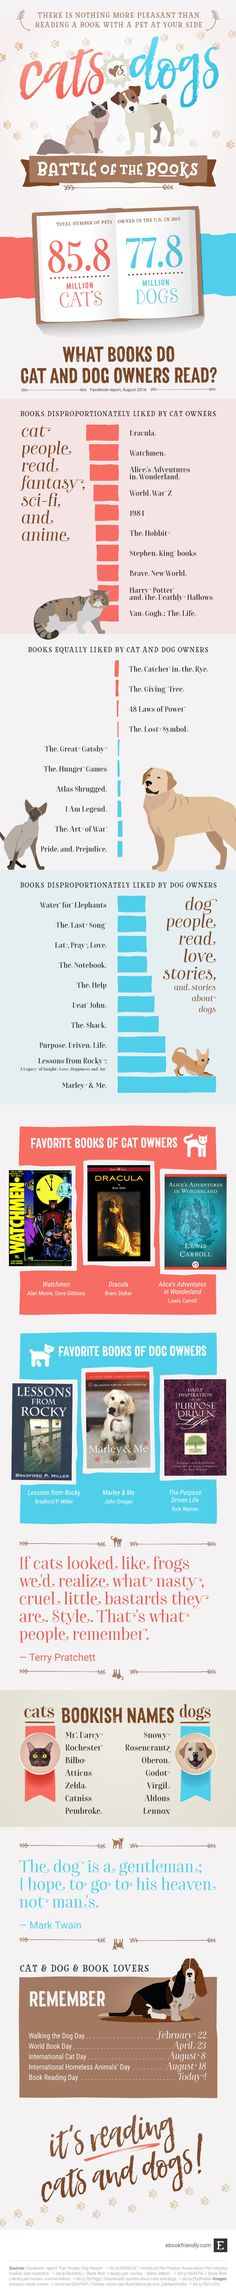 Favorite books of dog and cat owners #infographic